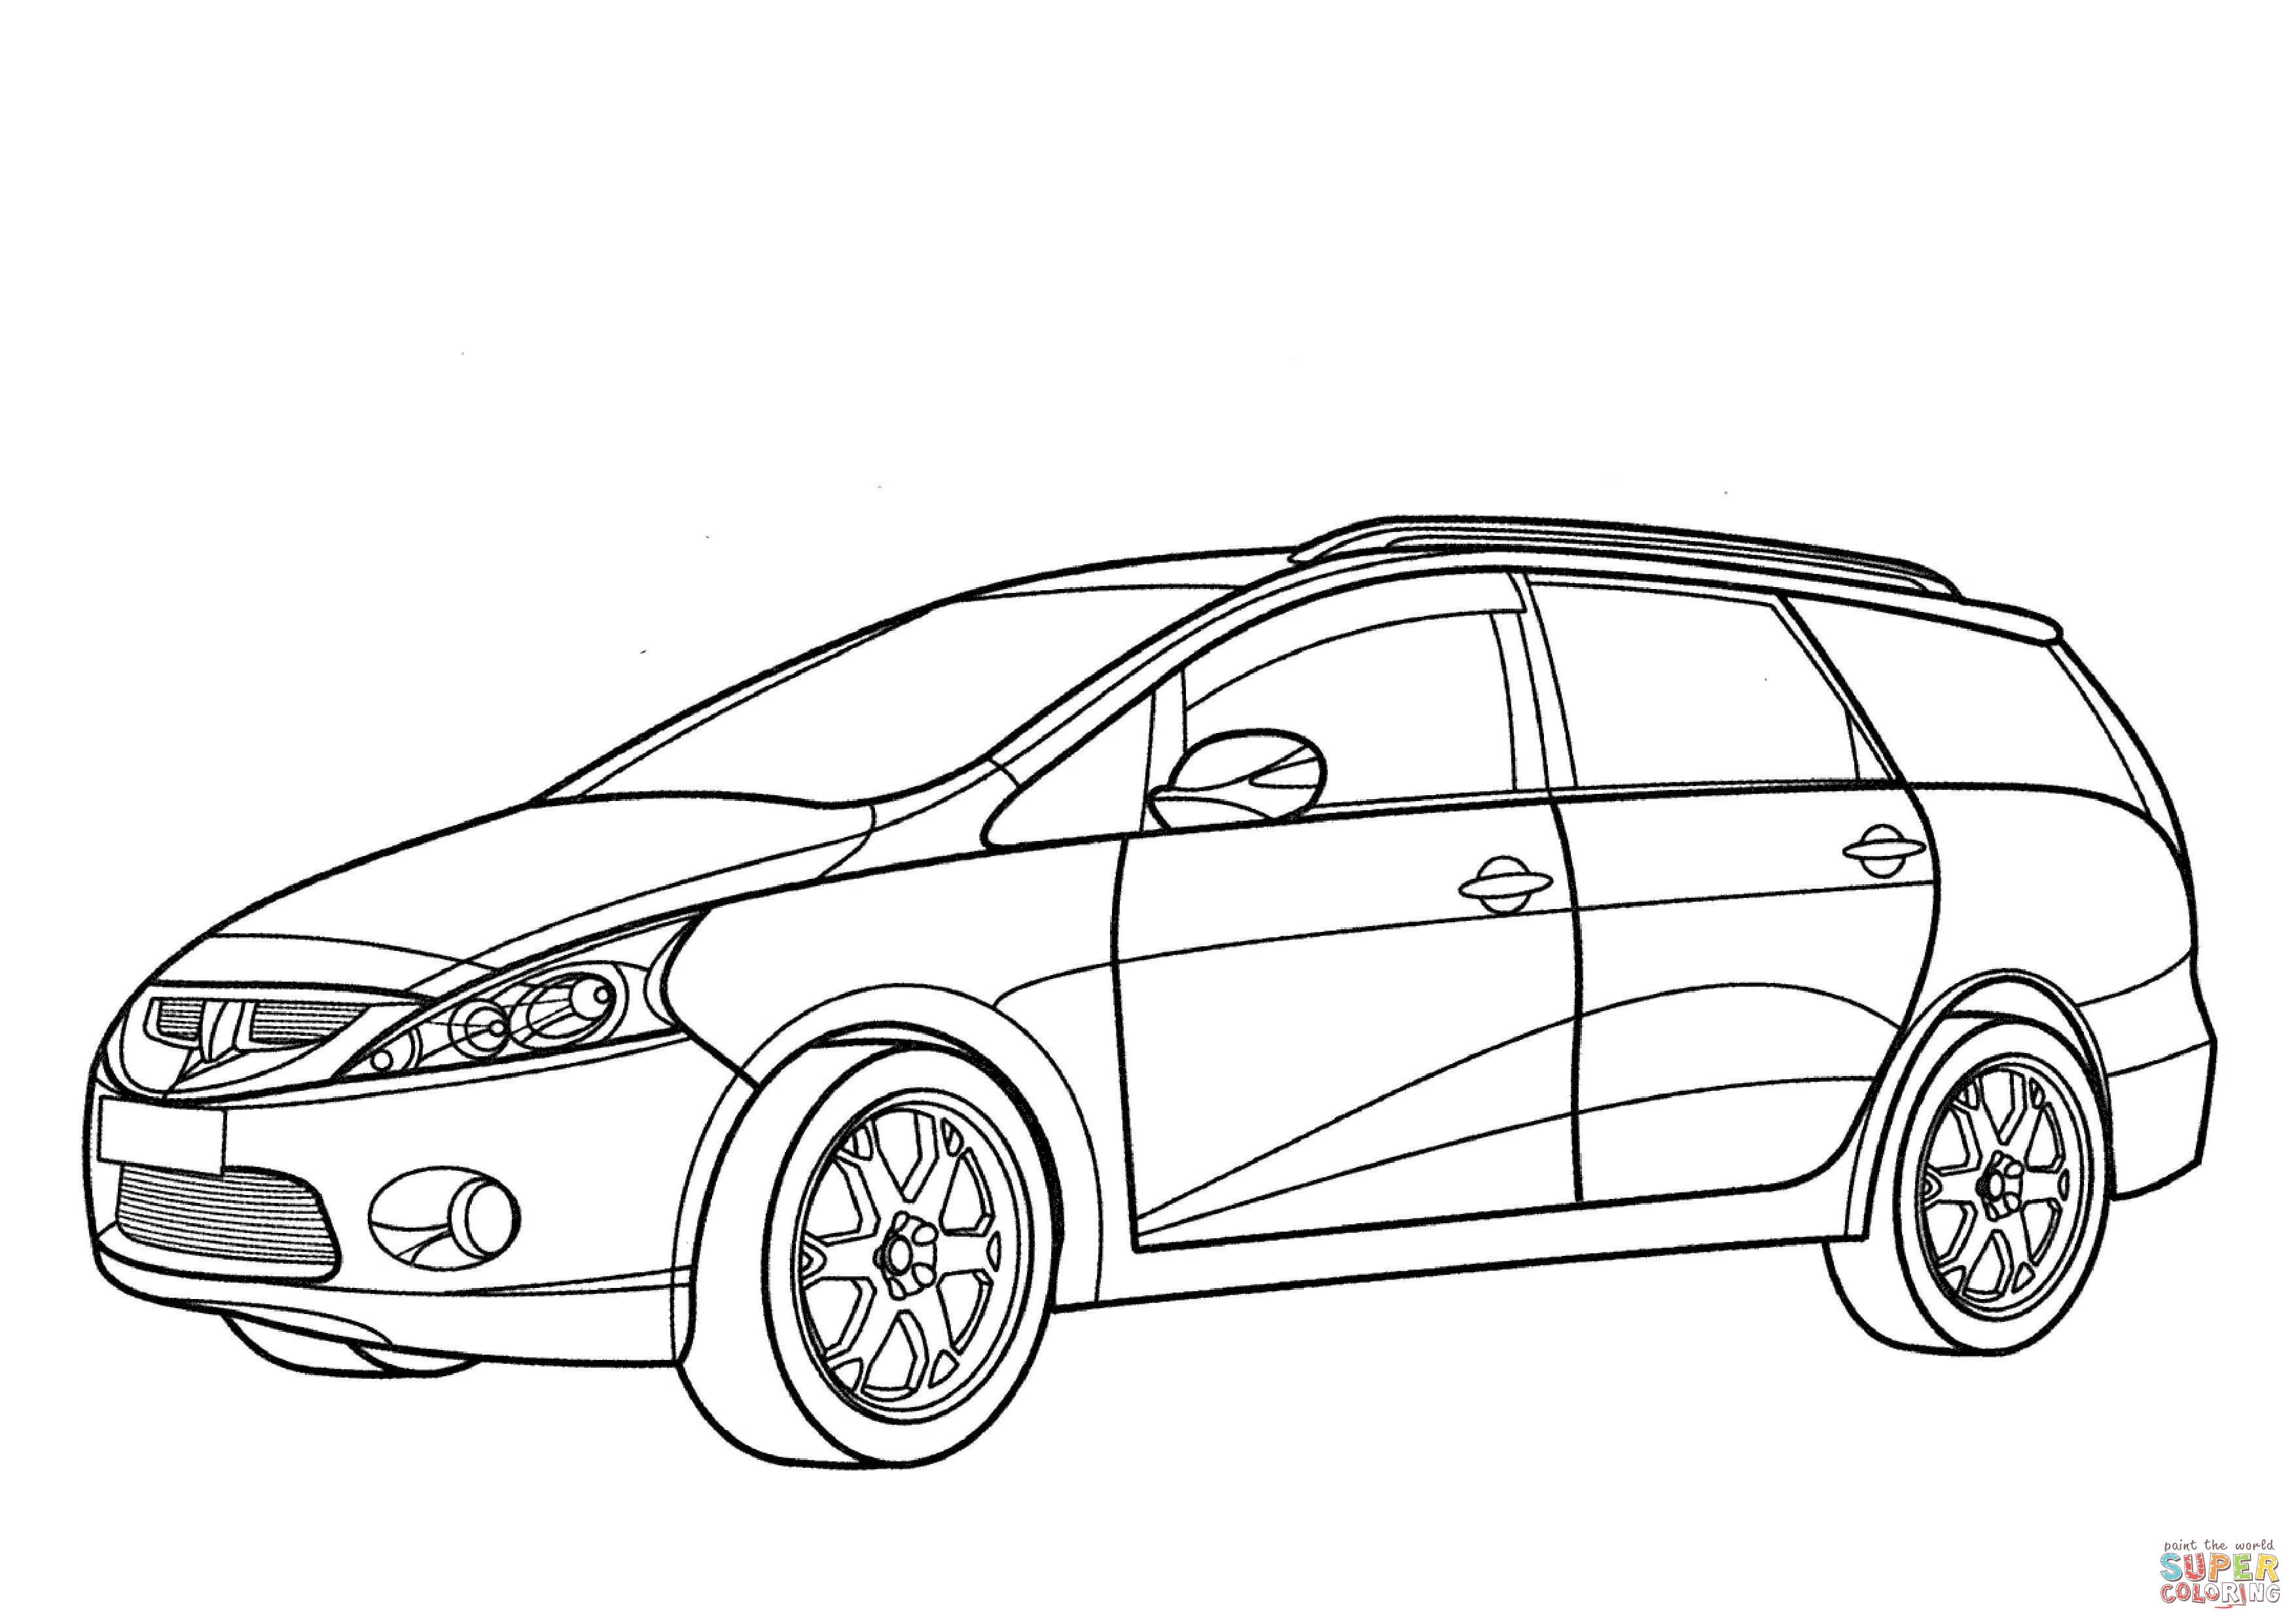 Mitsubishi Lancer Evo Coloring Pages Coloring Pages